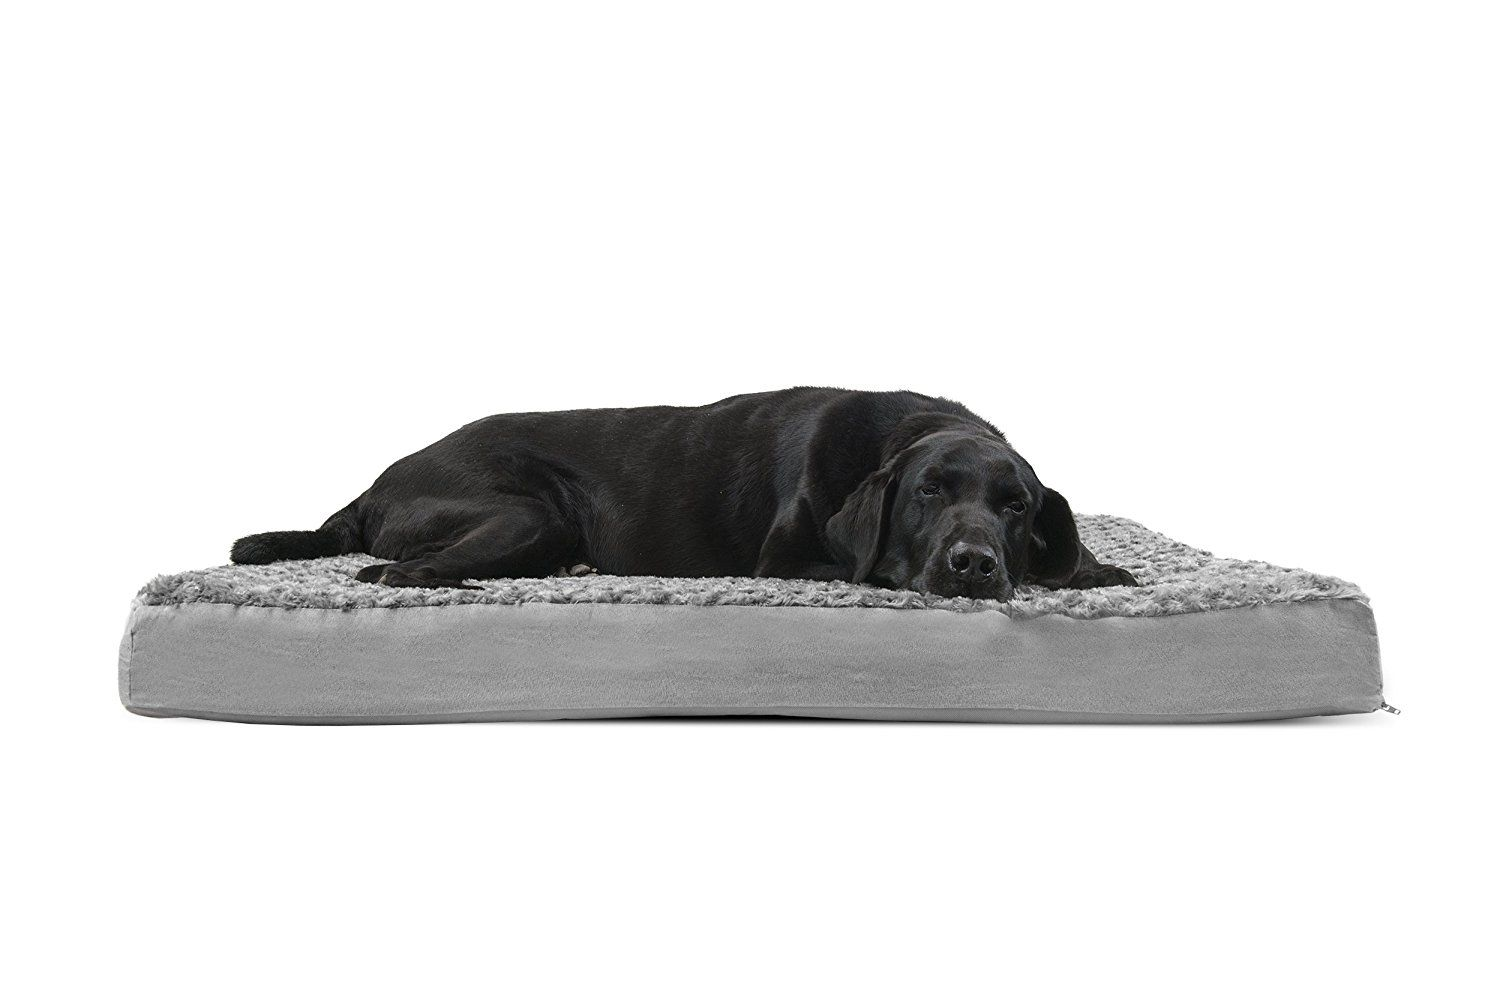 Furhaven Orthopedic Mattress Pet Bed Jumbo Gray For Dogs And Cats Features A Water Resistant Polycanvas Base T Dog Pet Beds Orthopedic Pet Bed Cool Dog Beds